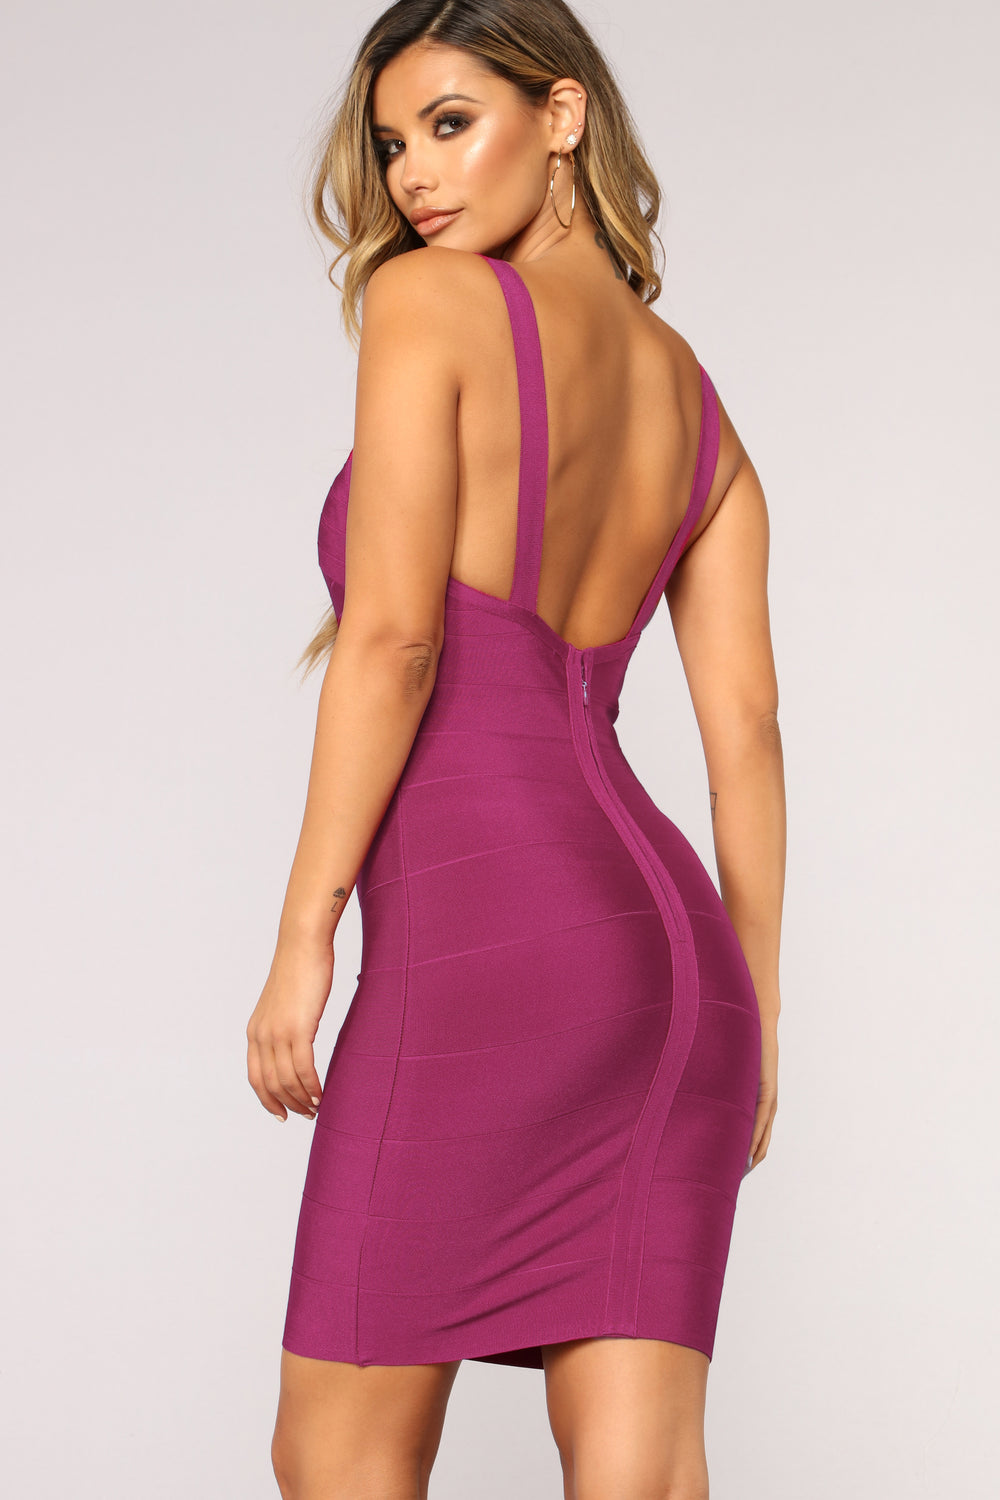 Sevilla Bandage Dress - Wine